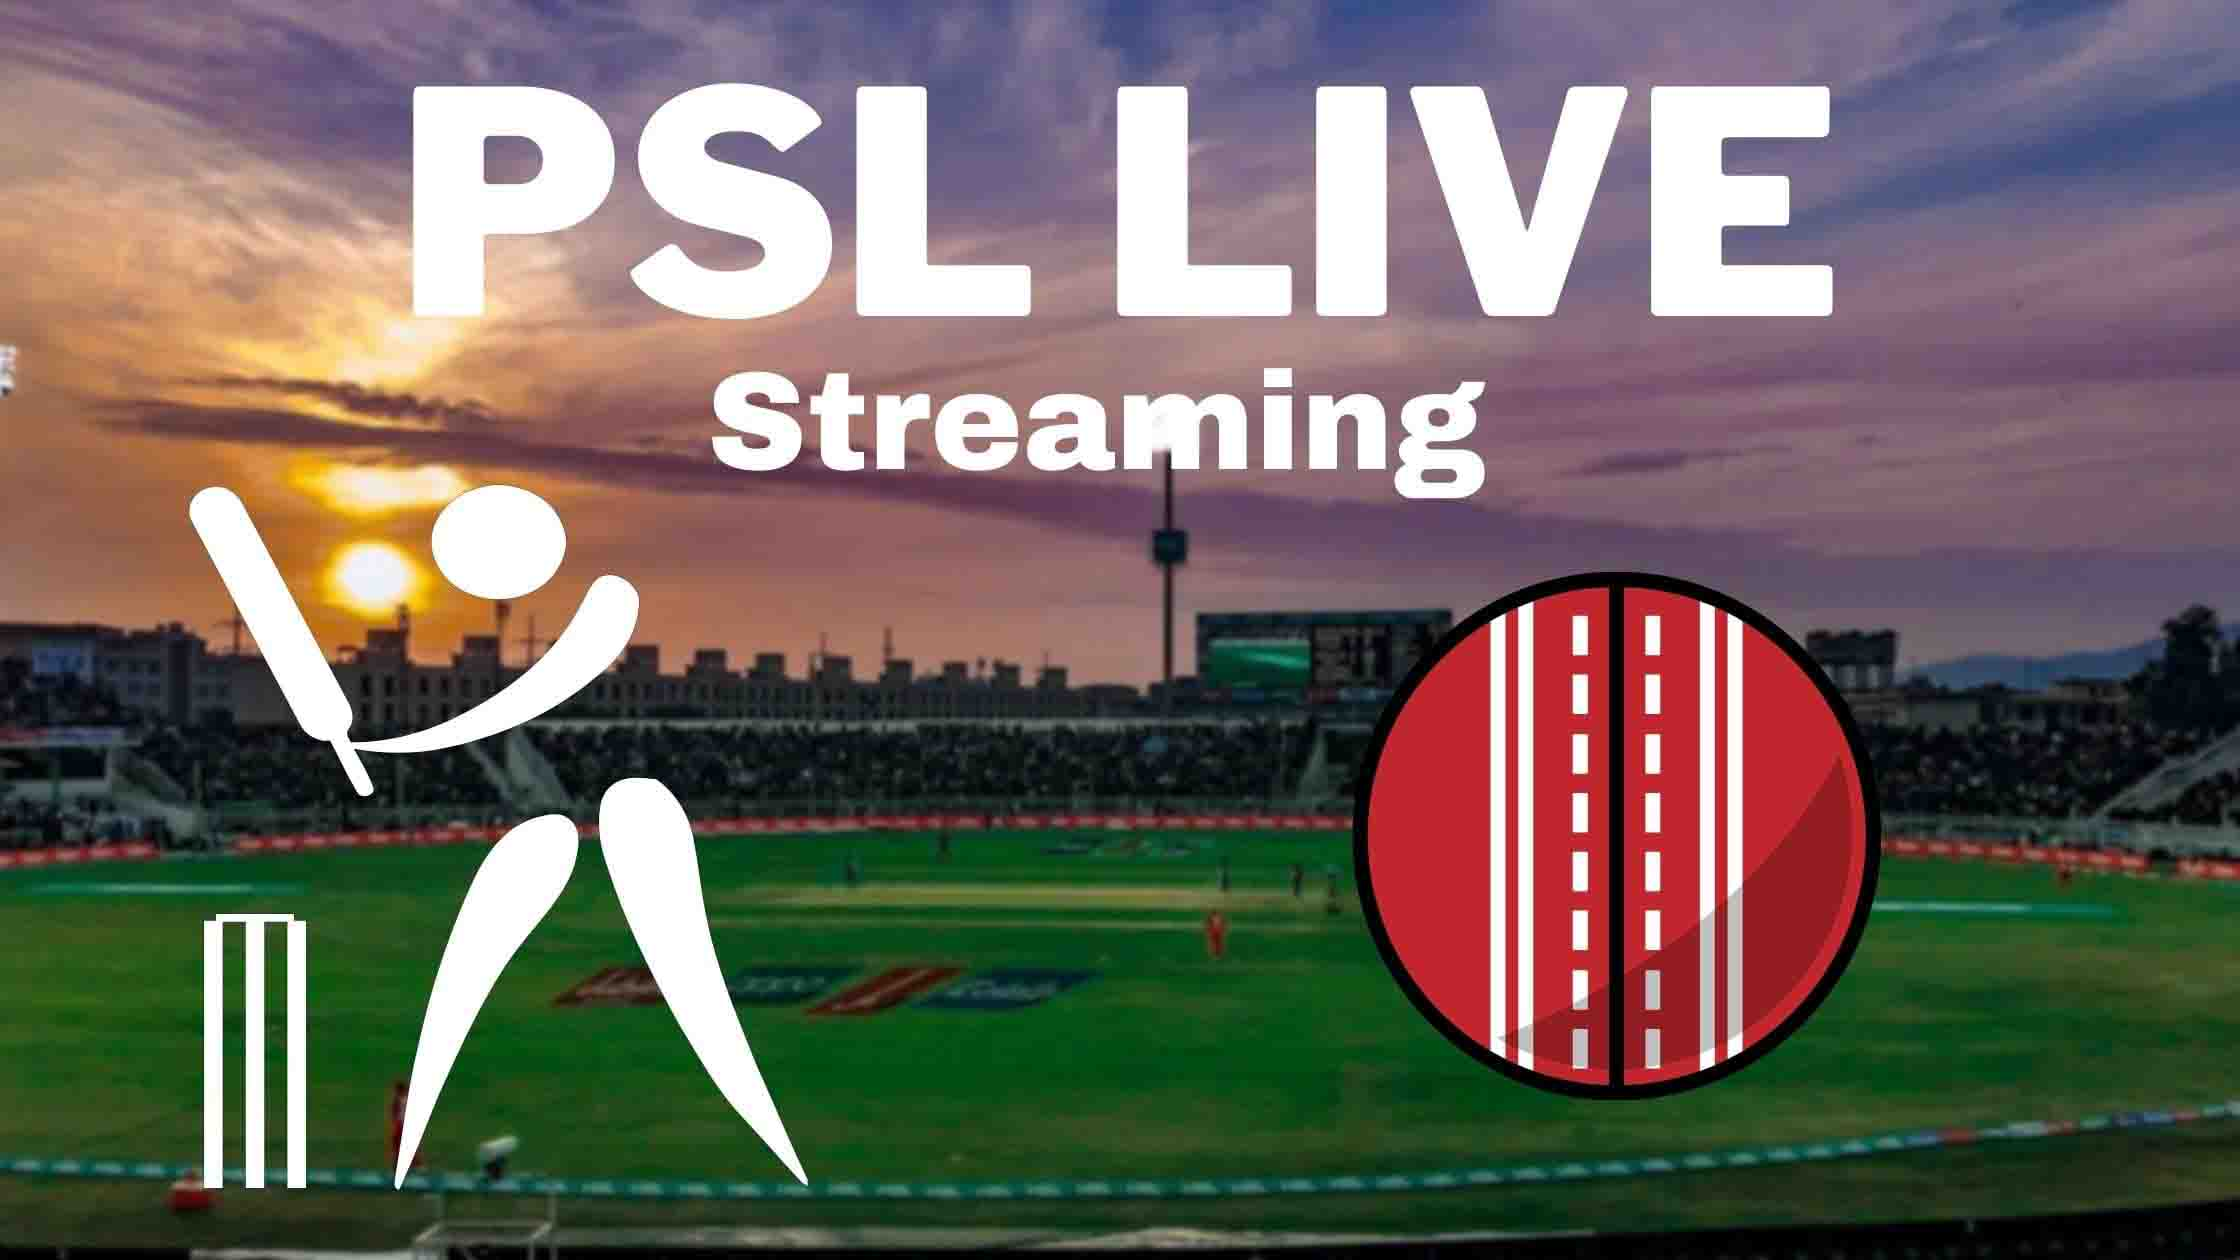 PSL live Streaming Free 2021-Watch PSL Live Match Today